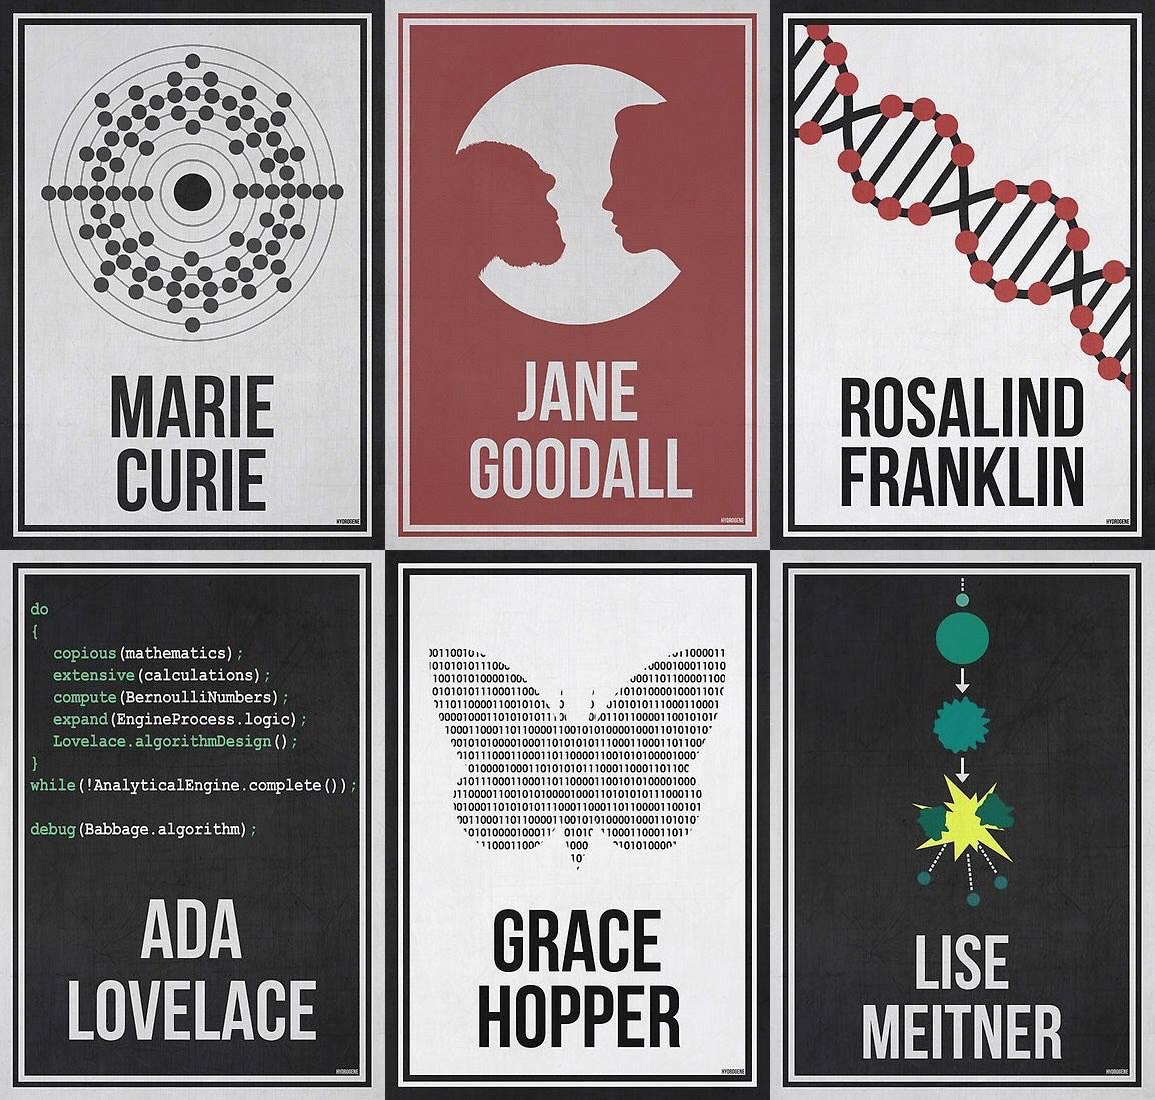 science, woman, and marie curie image